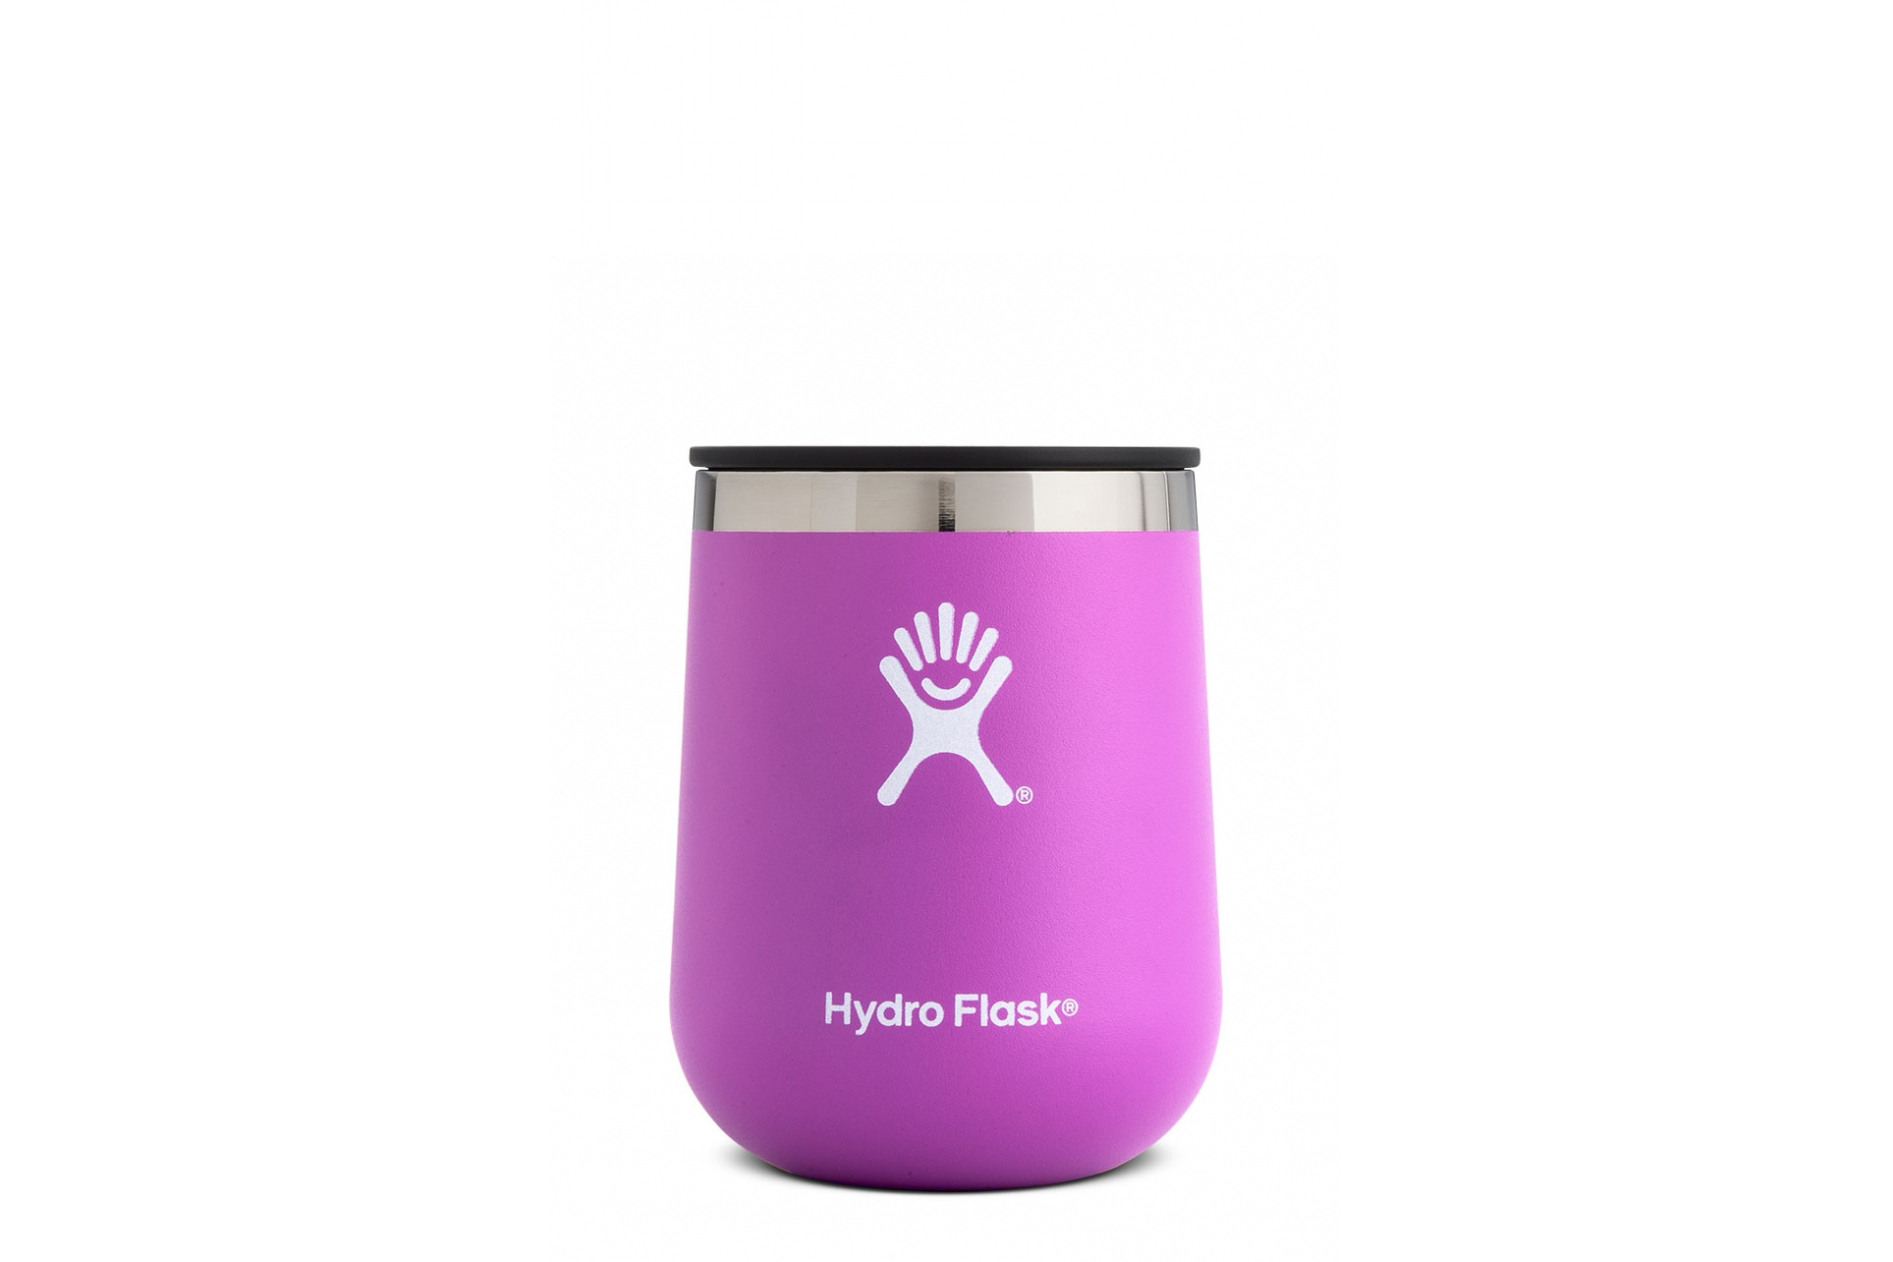 Hydro Flask Wine Tumbler 10 Oz Great Outdoor Provision